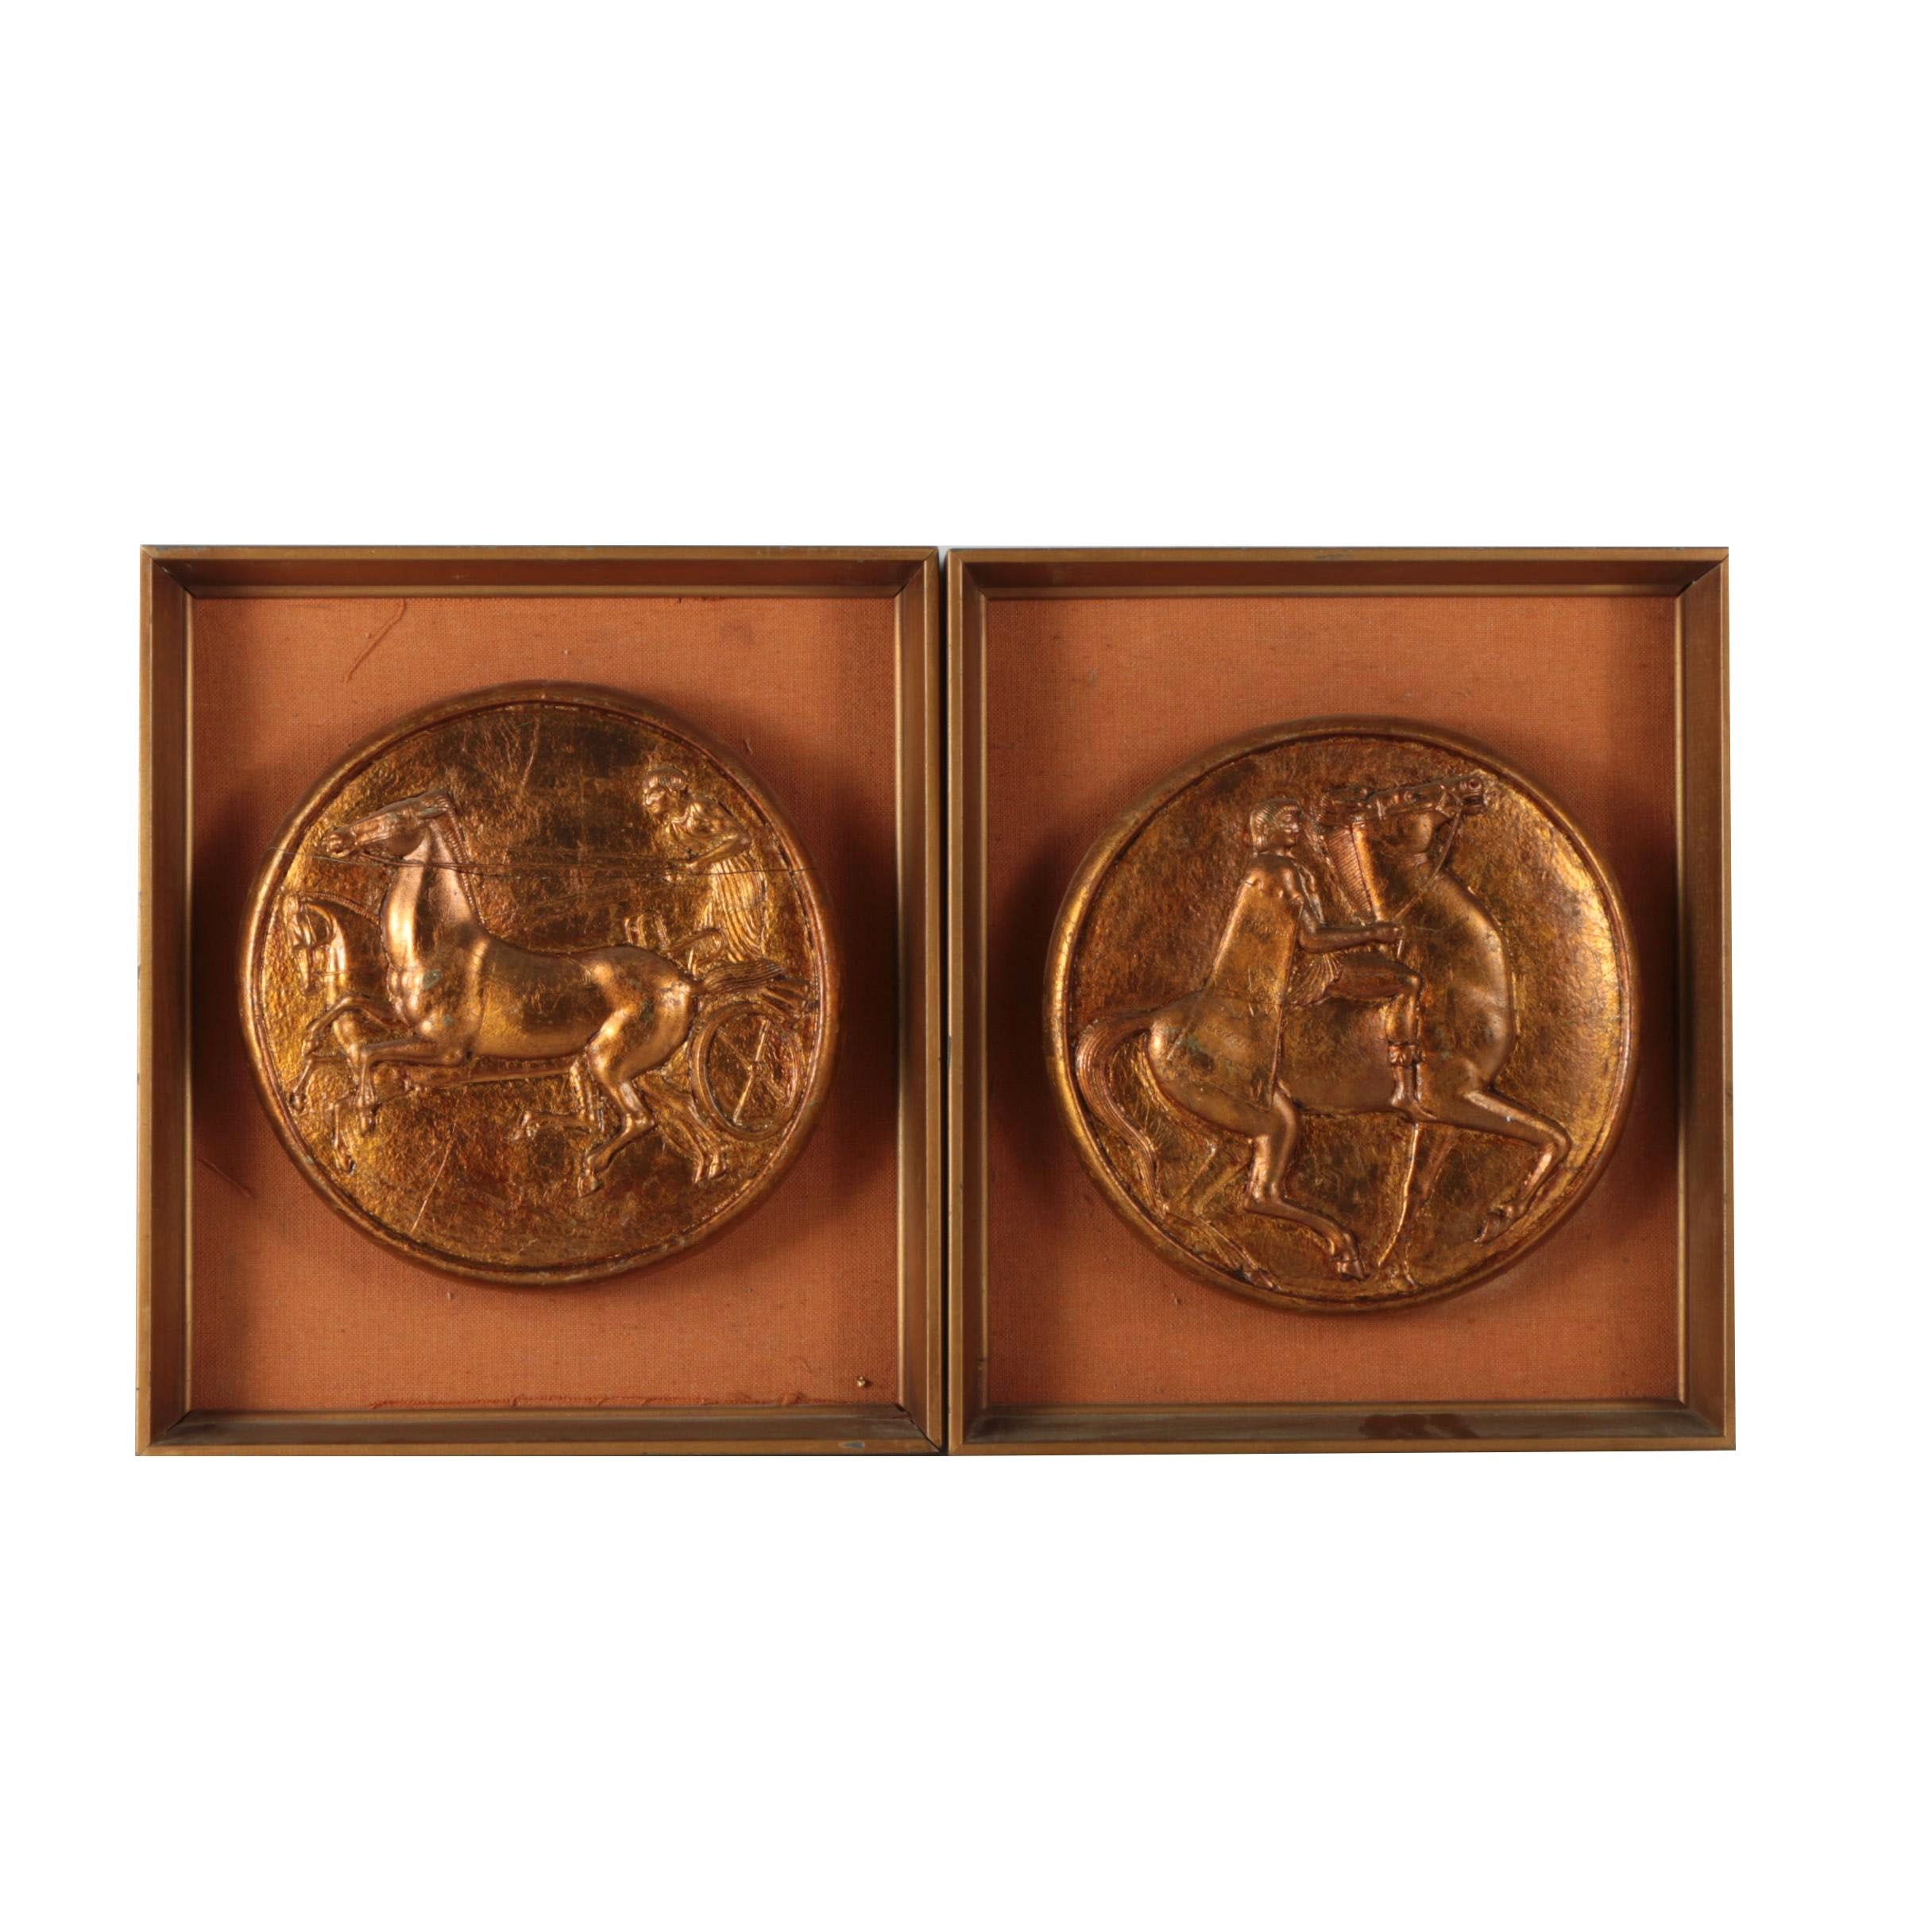 Decorative Gold Tone Plaster Medallions